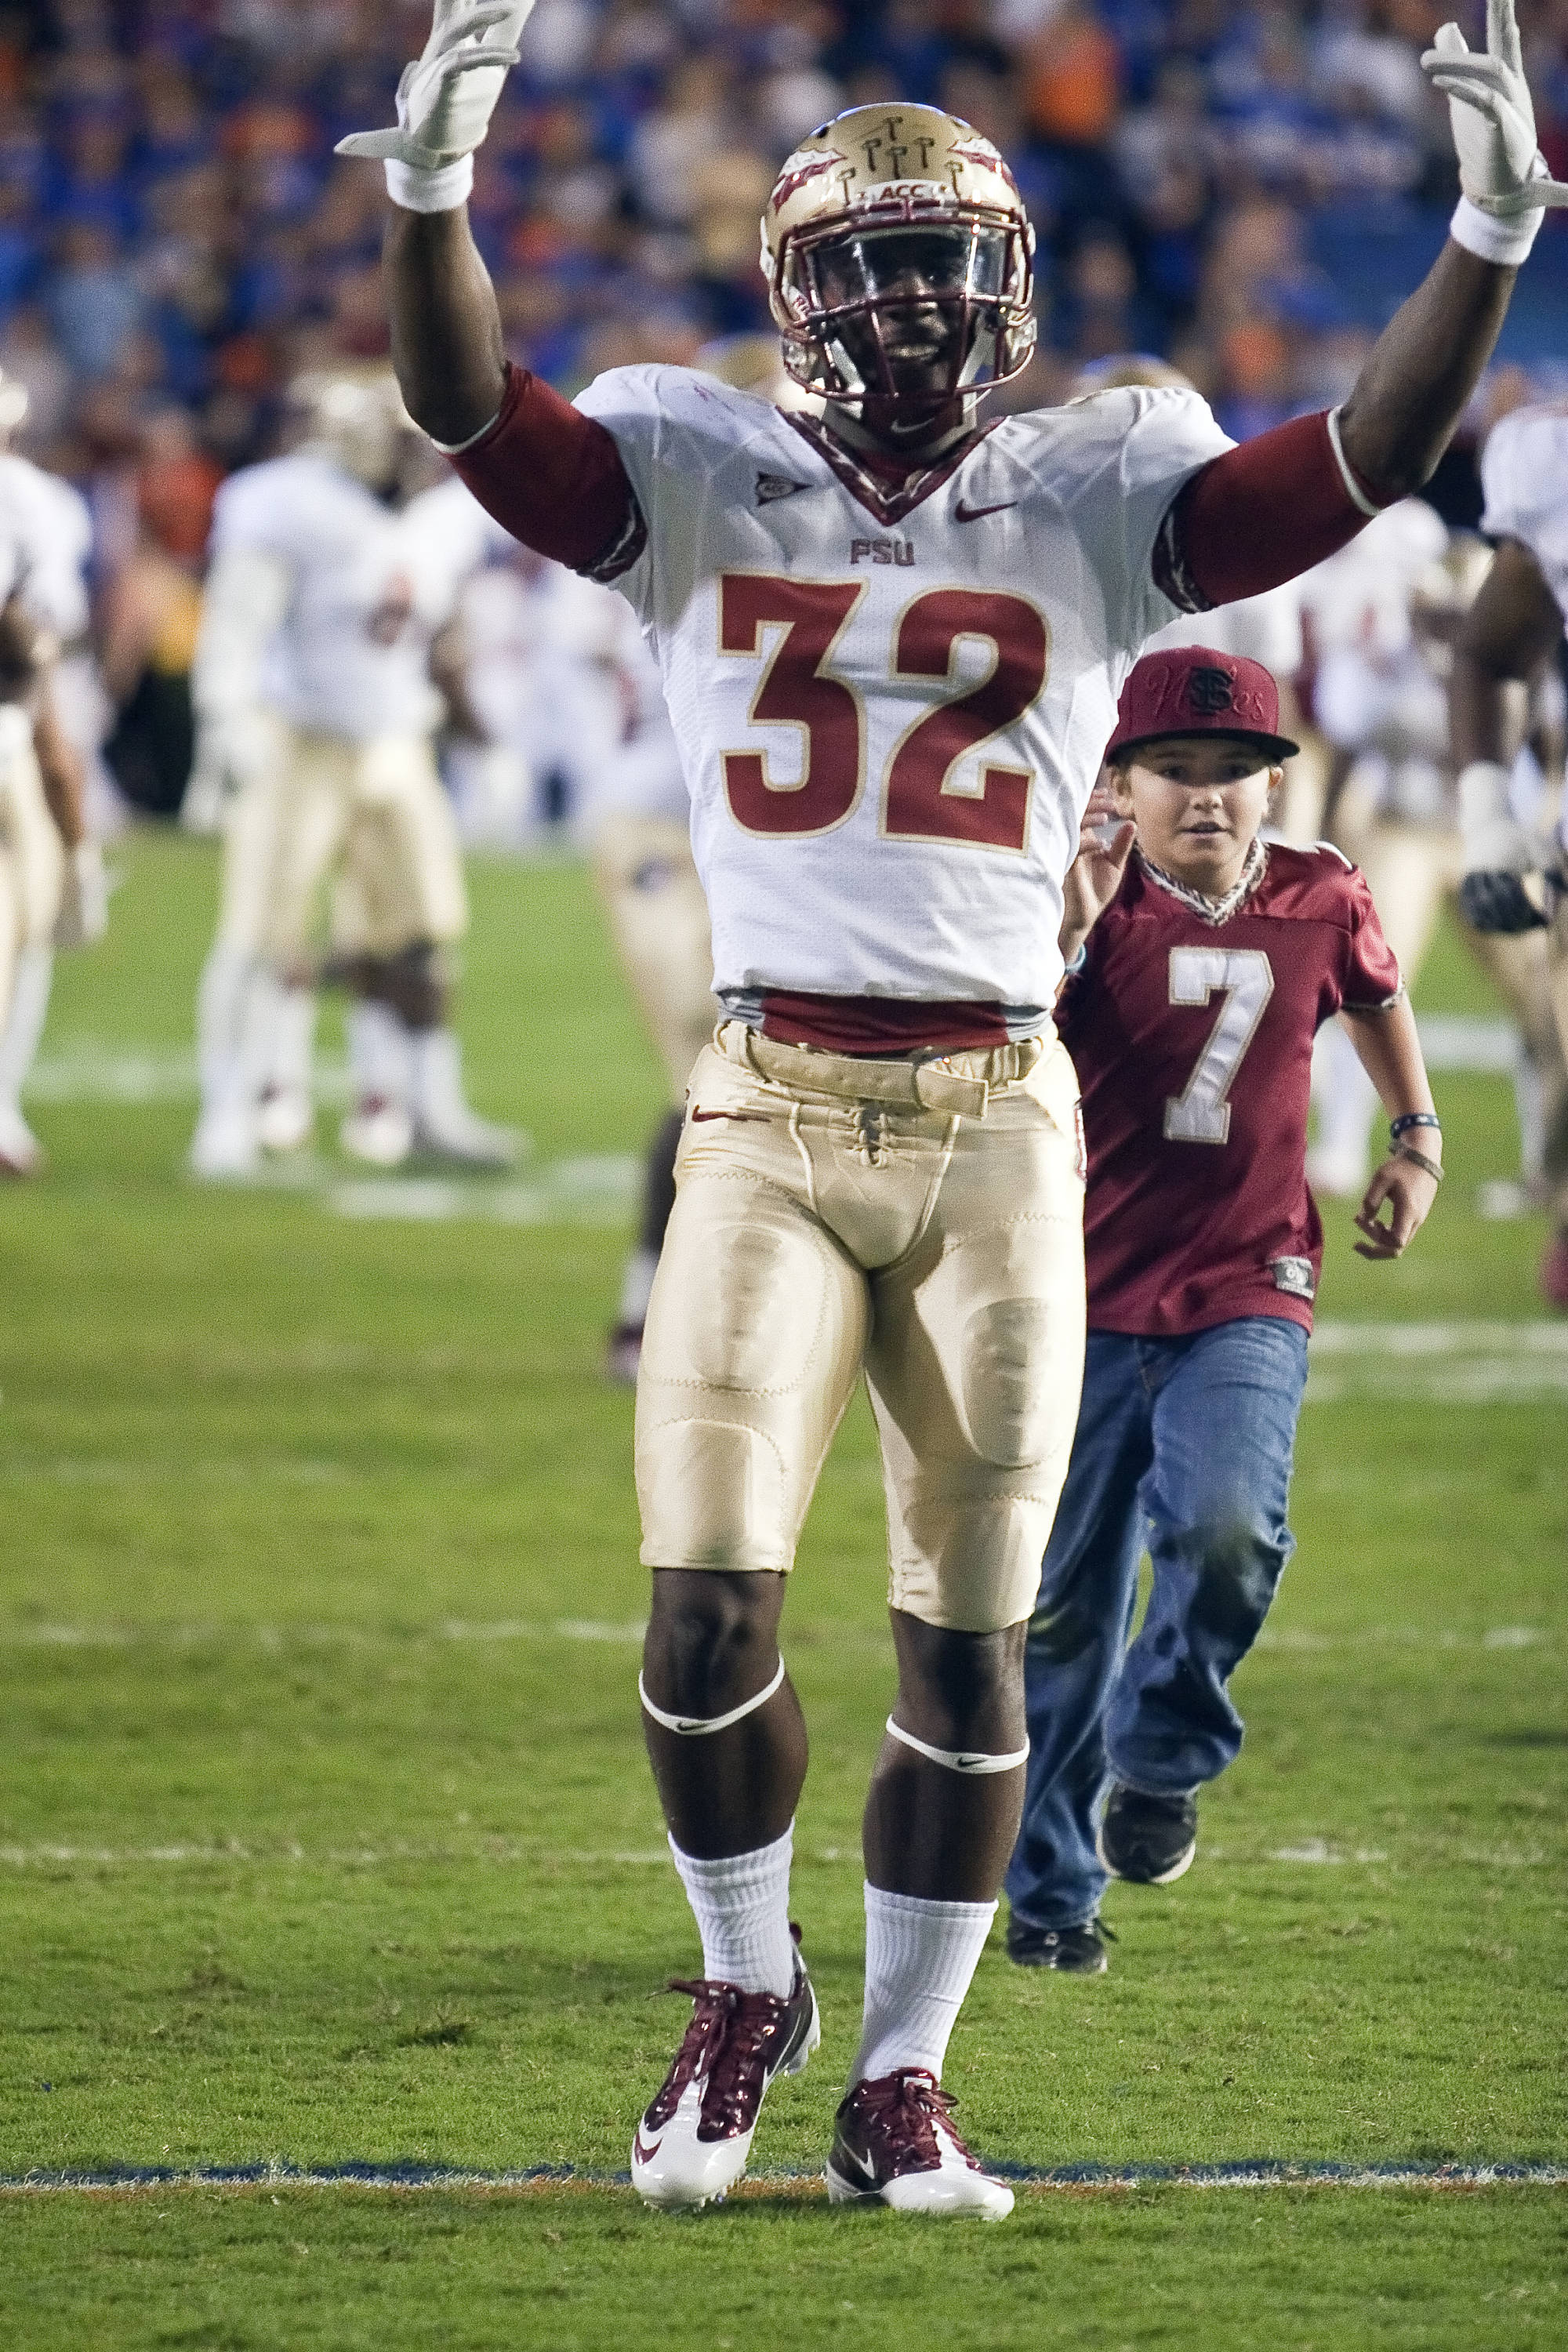 James Wilder Jr. calling for more Nole's cheers, FSU vs Florida, 11/26/2011